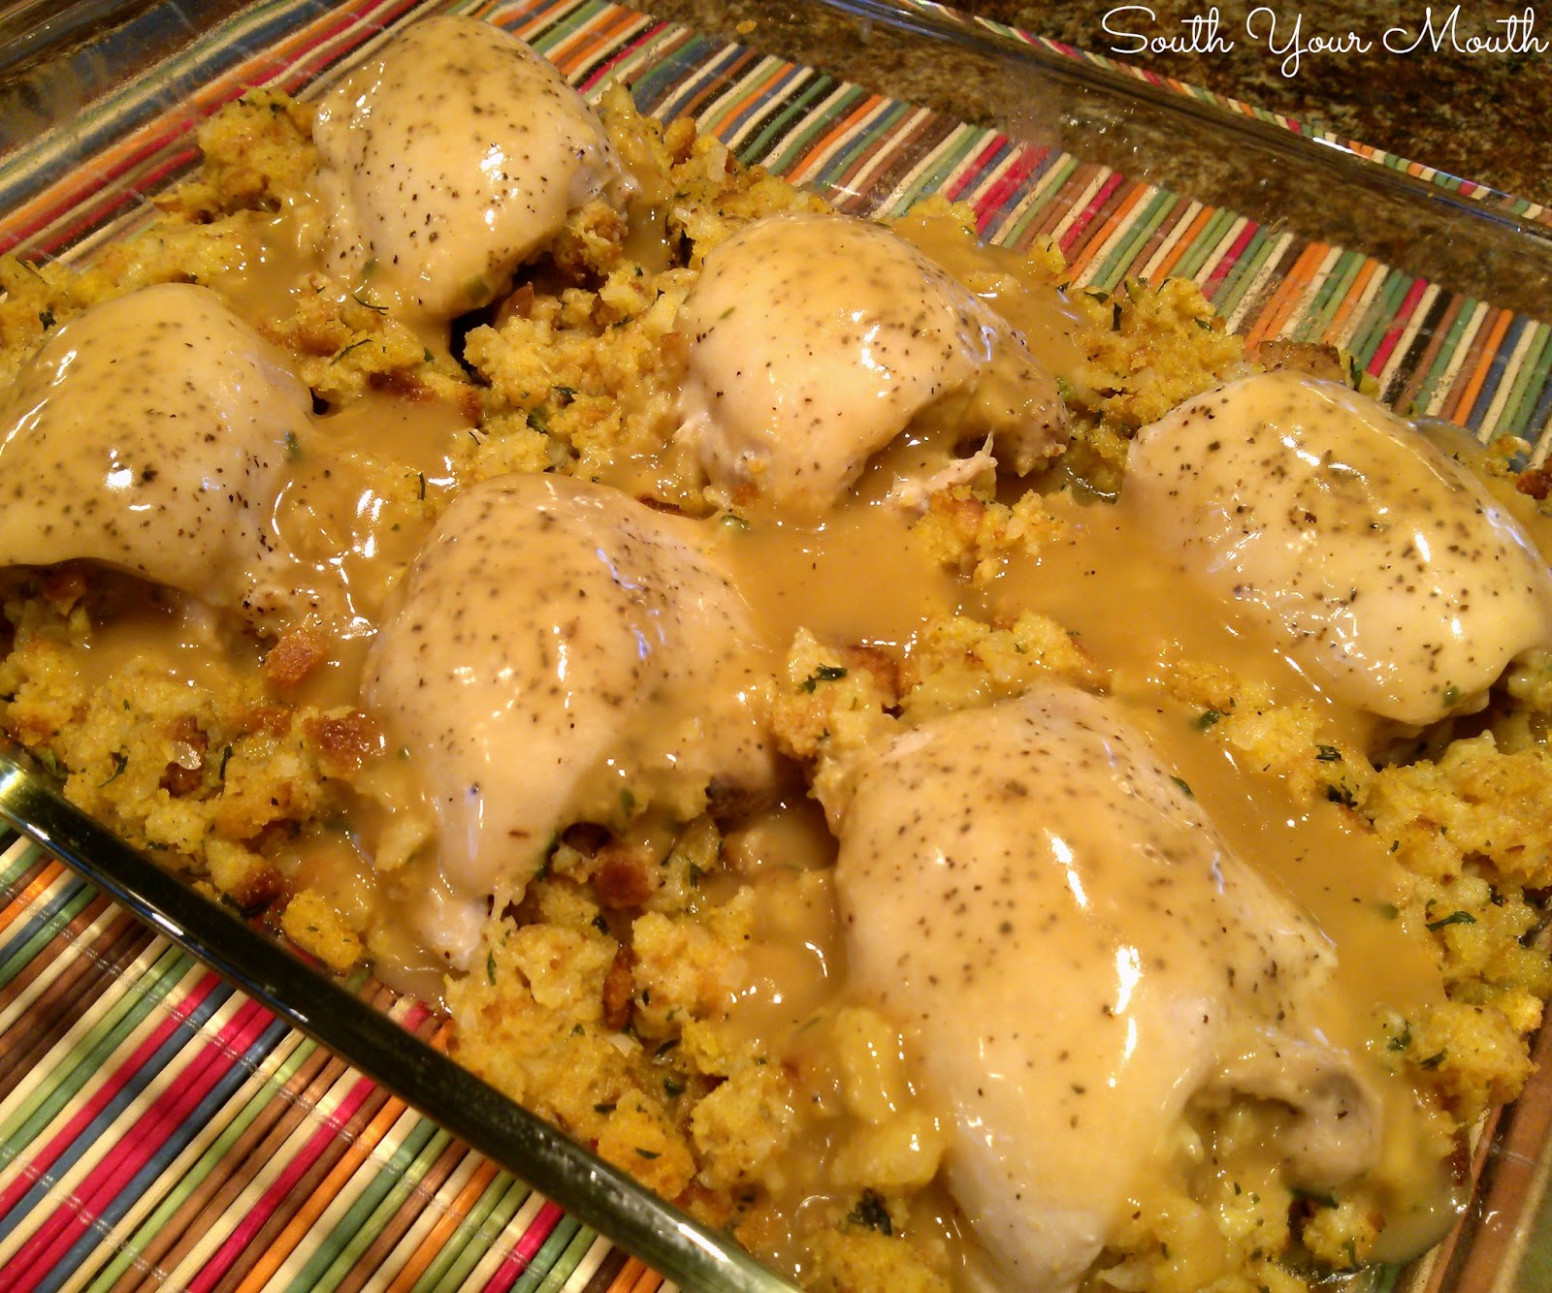 South Your Mouth: Stuffed Chicken with Gravy - stove top recipes chicken